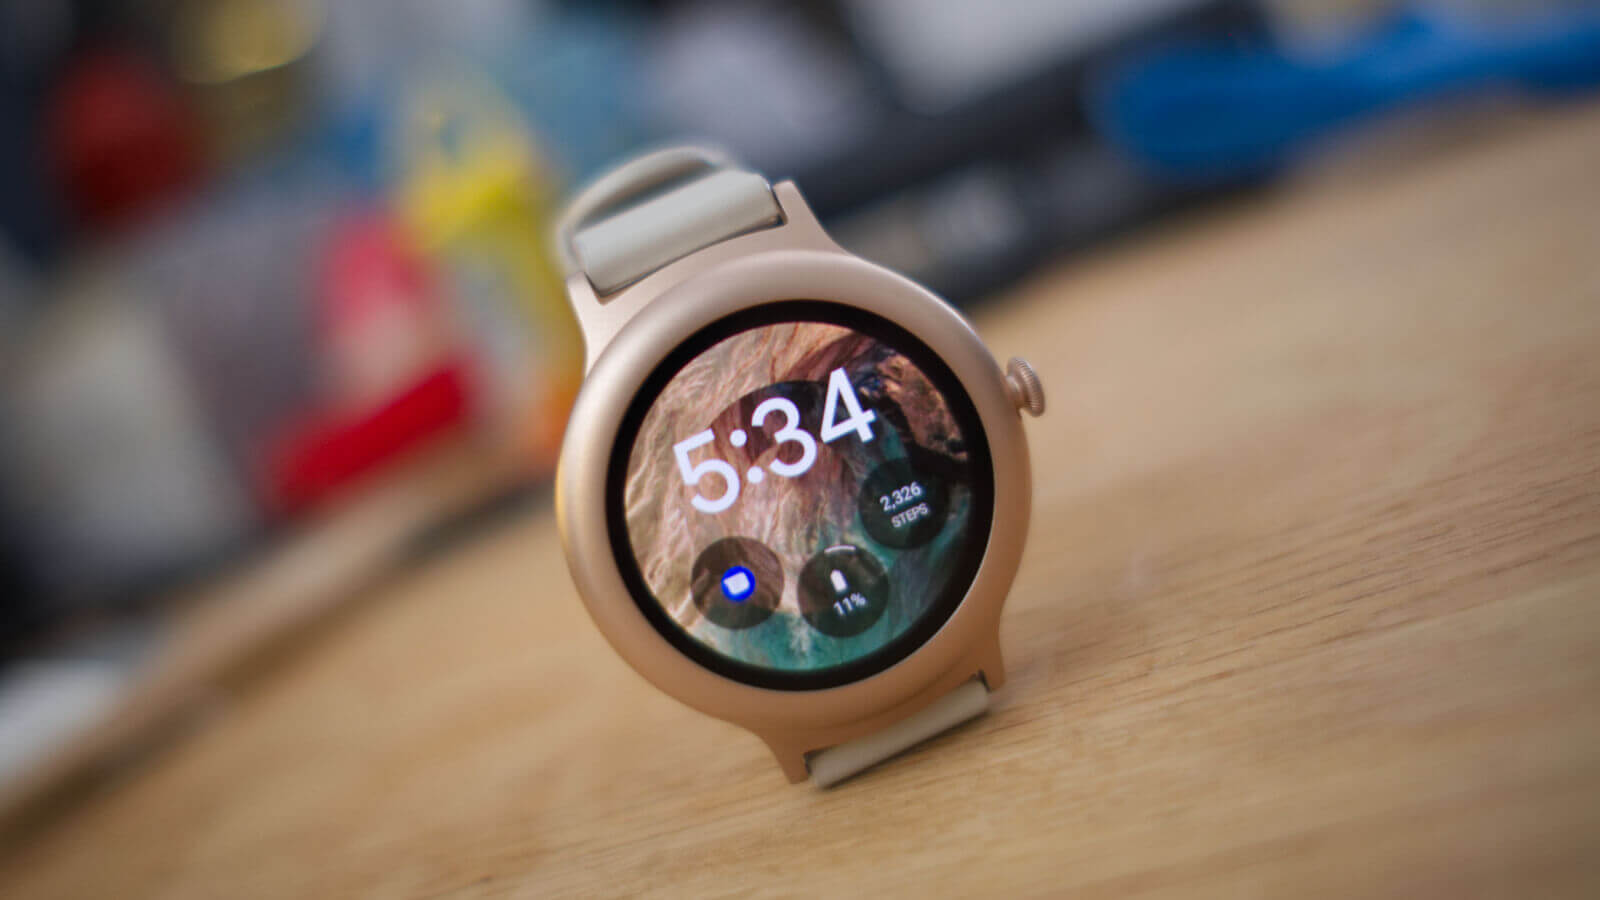 Android Wear 3.0